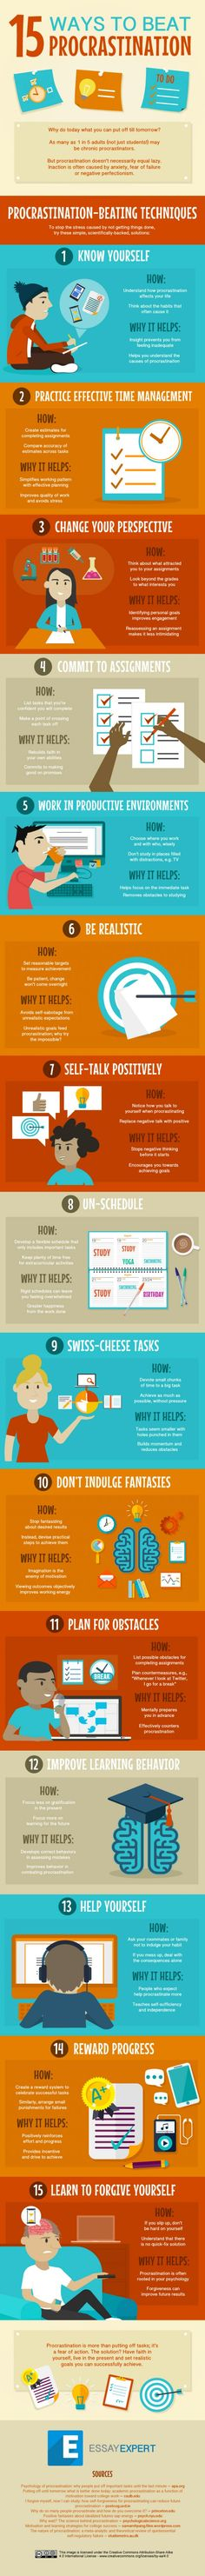 15 Tips to Stop Procrastination in Its Tracks